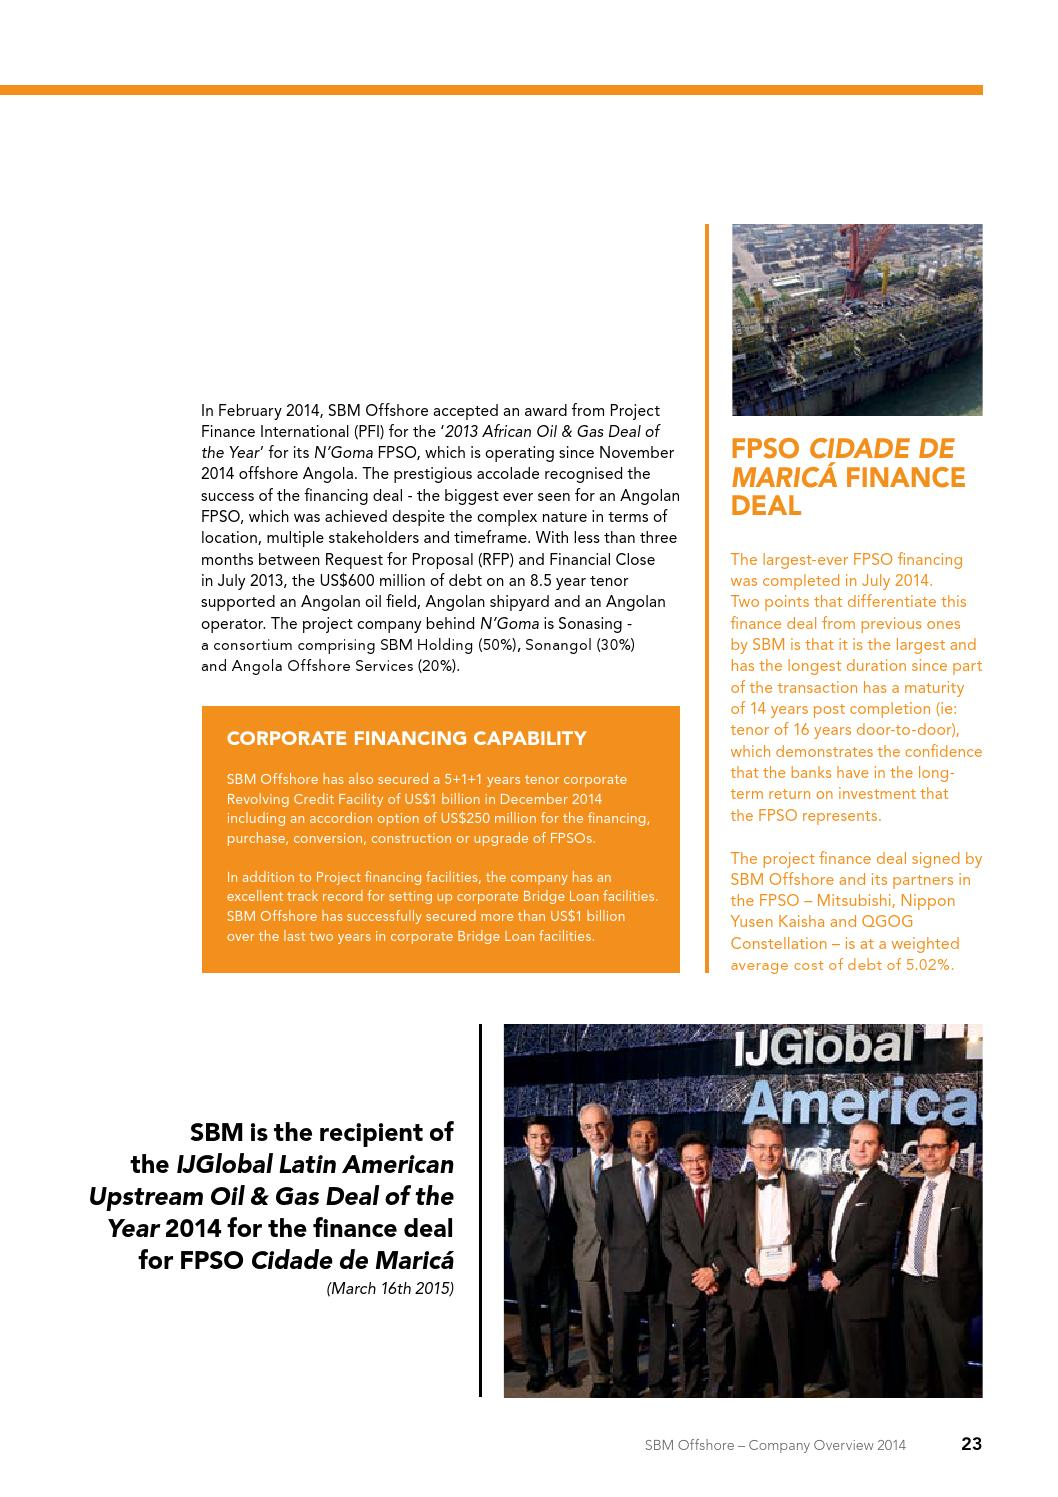 SBM Offshore company overview 2014 by Mattmo - issuu